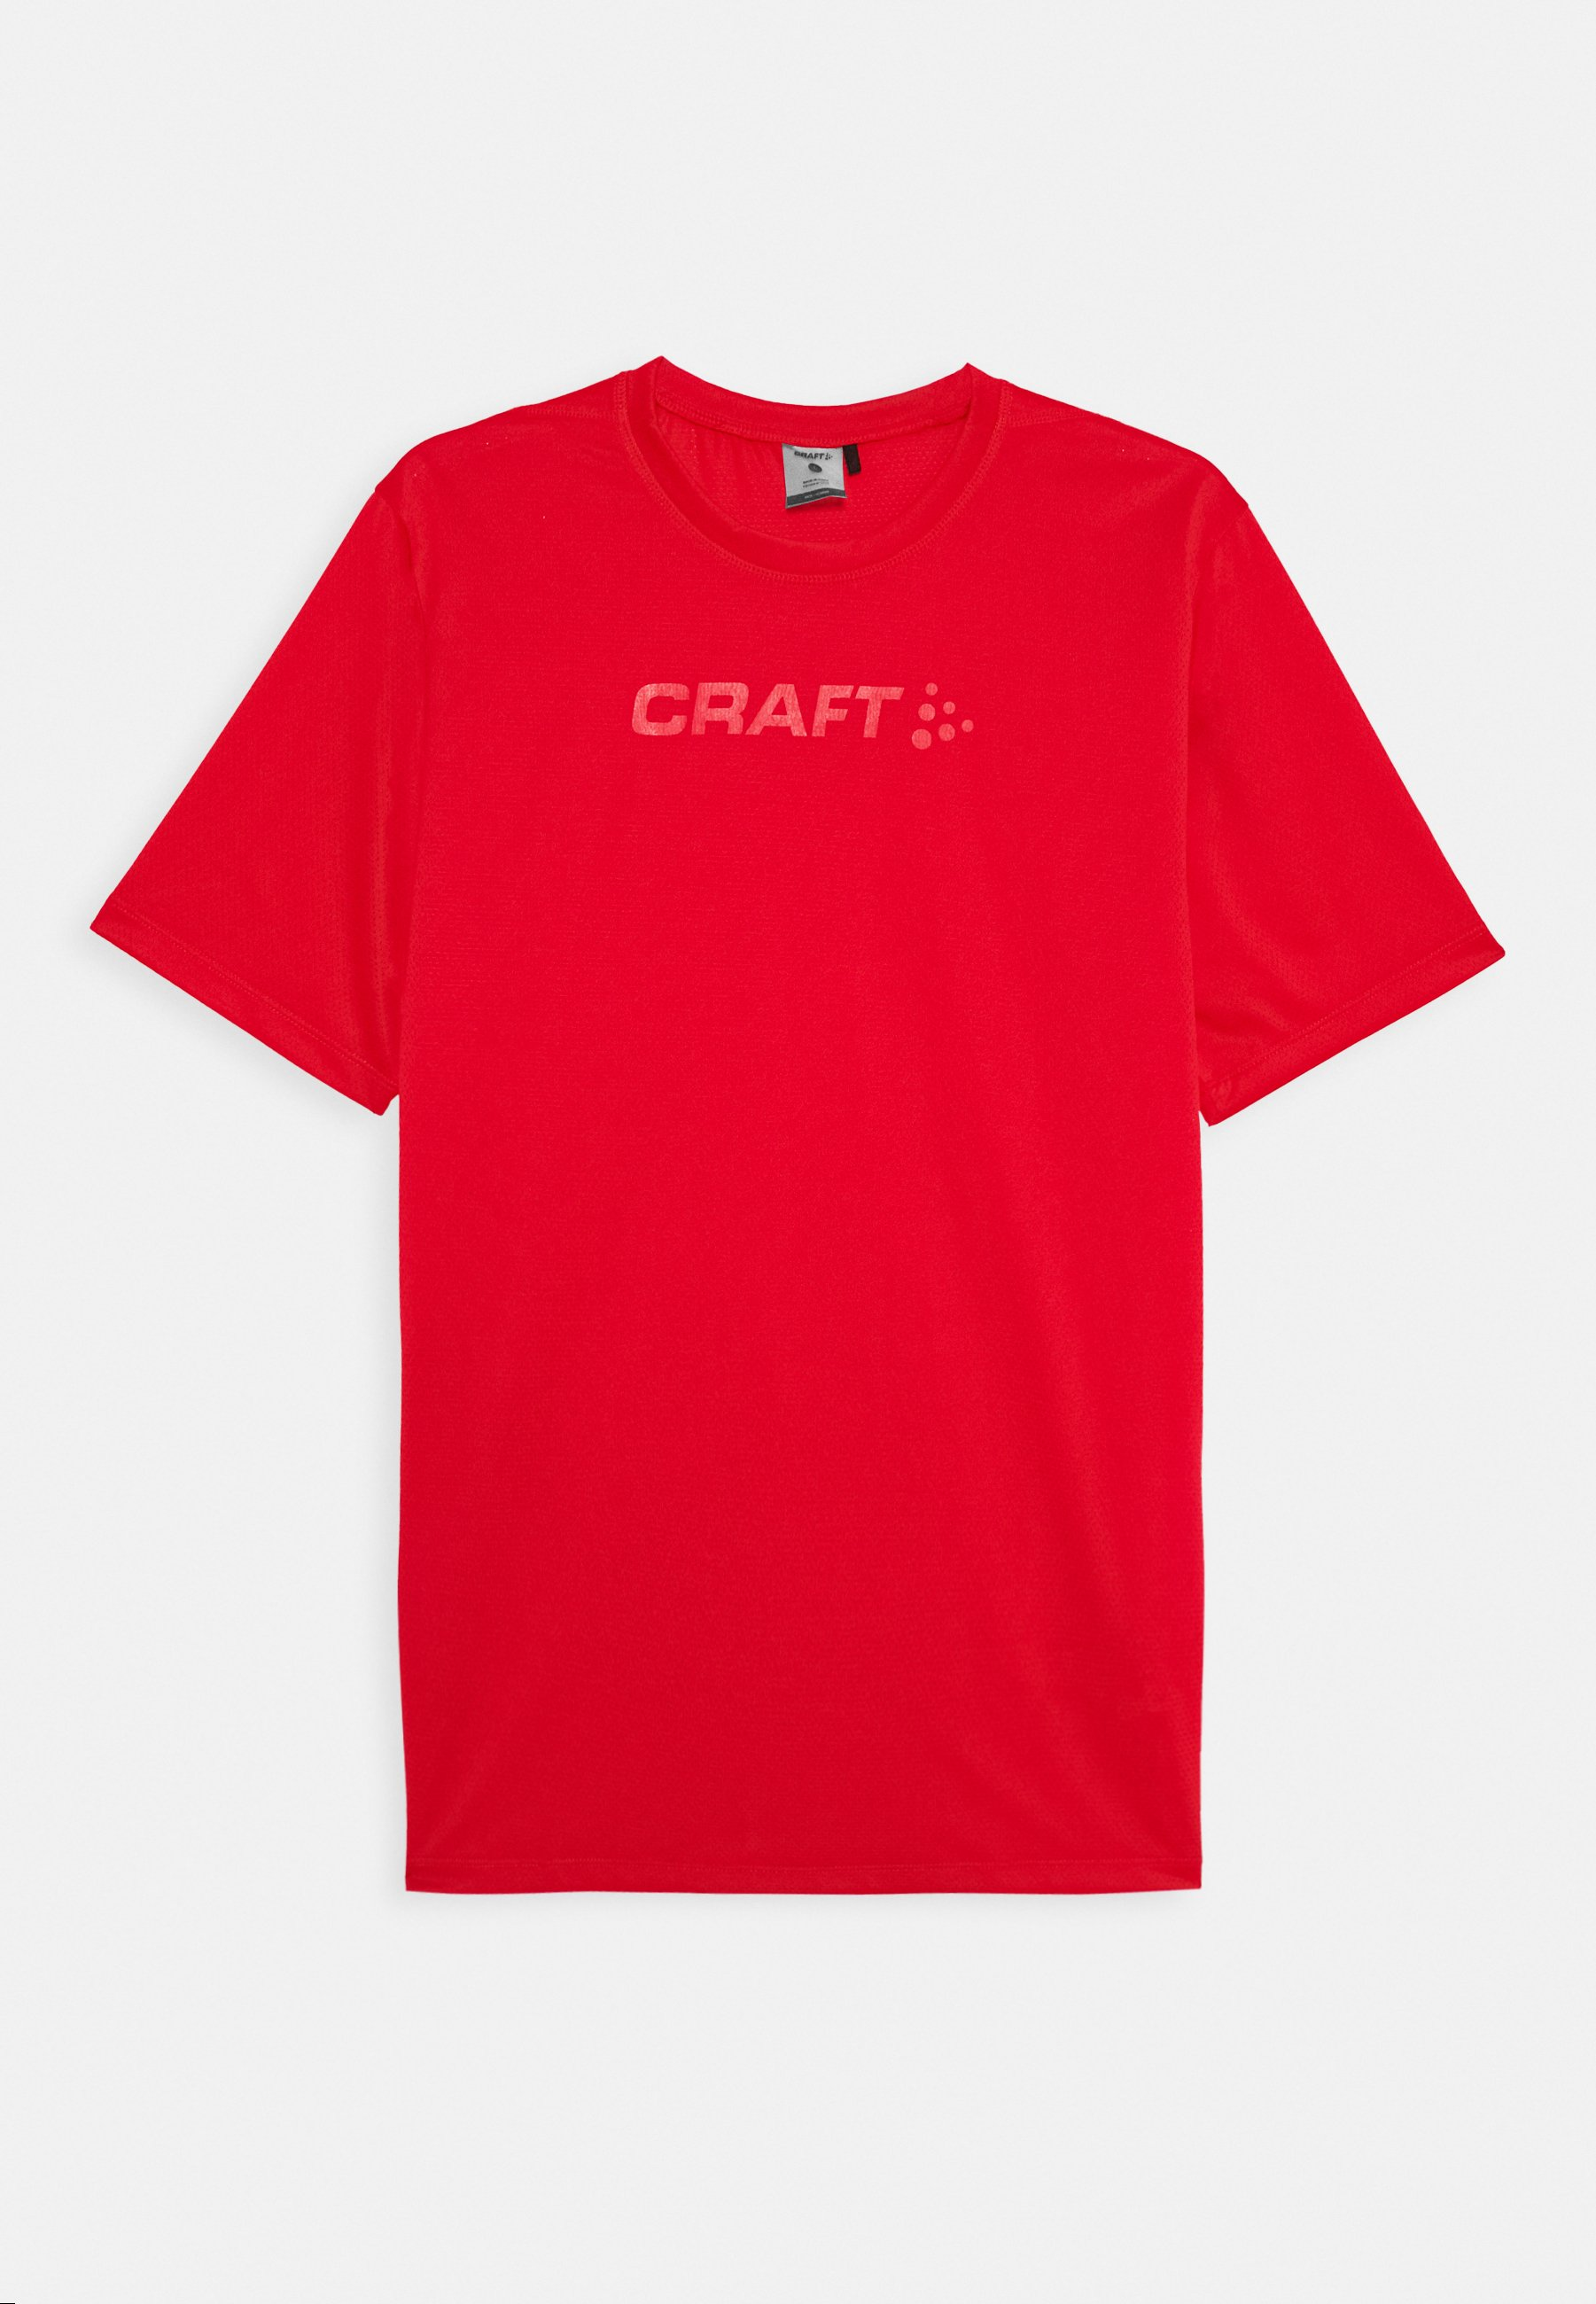 Craft Core Essence Tee - T-shirt Con Stampa Blue FGR6z